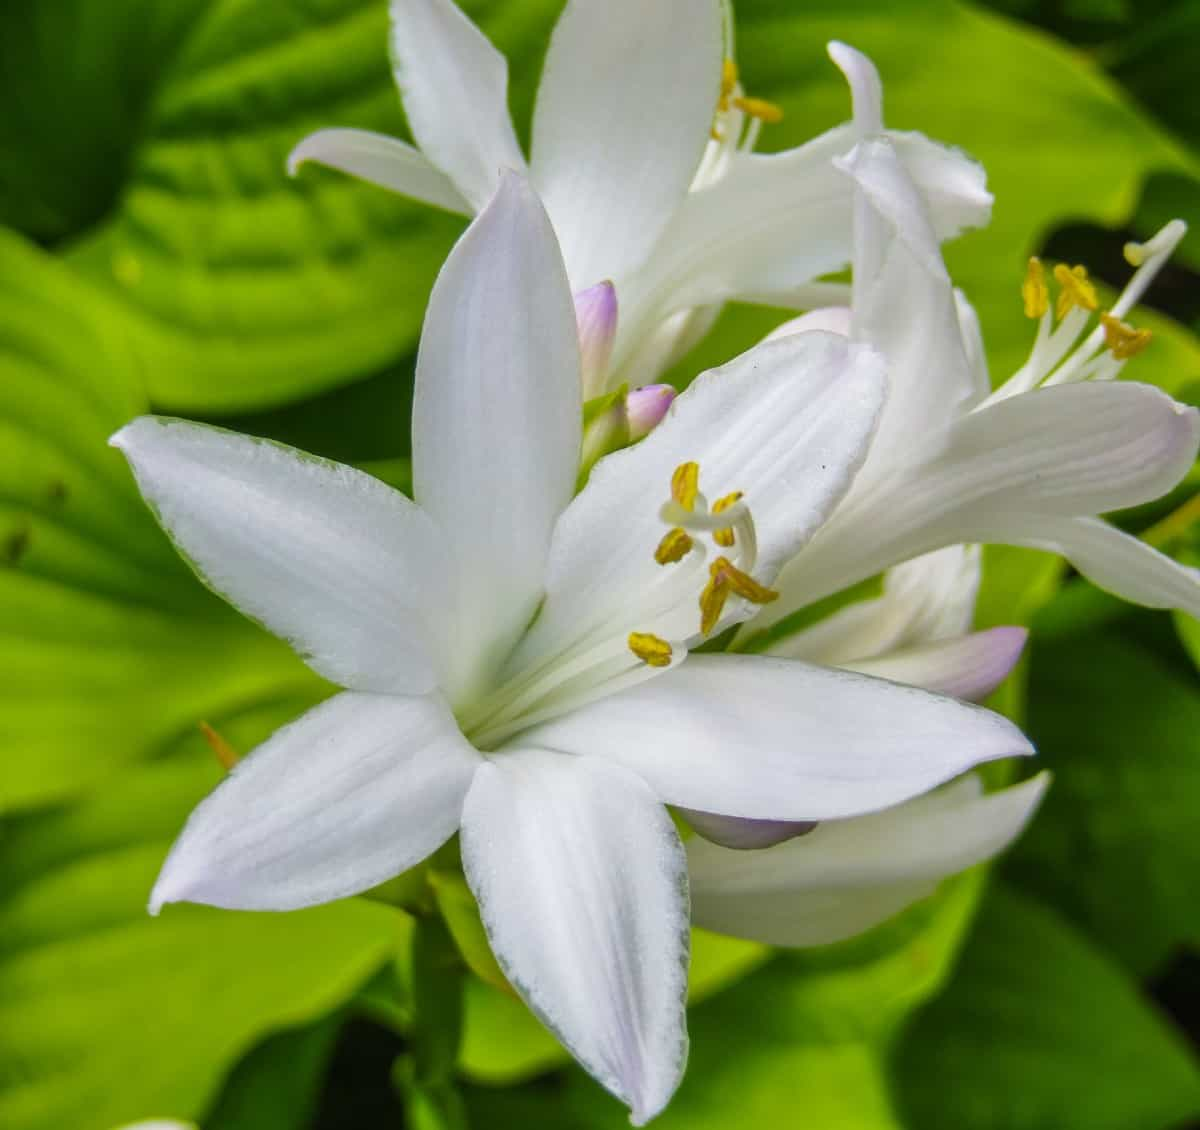 The August lily is a type of hosta or plantain lily.